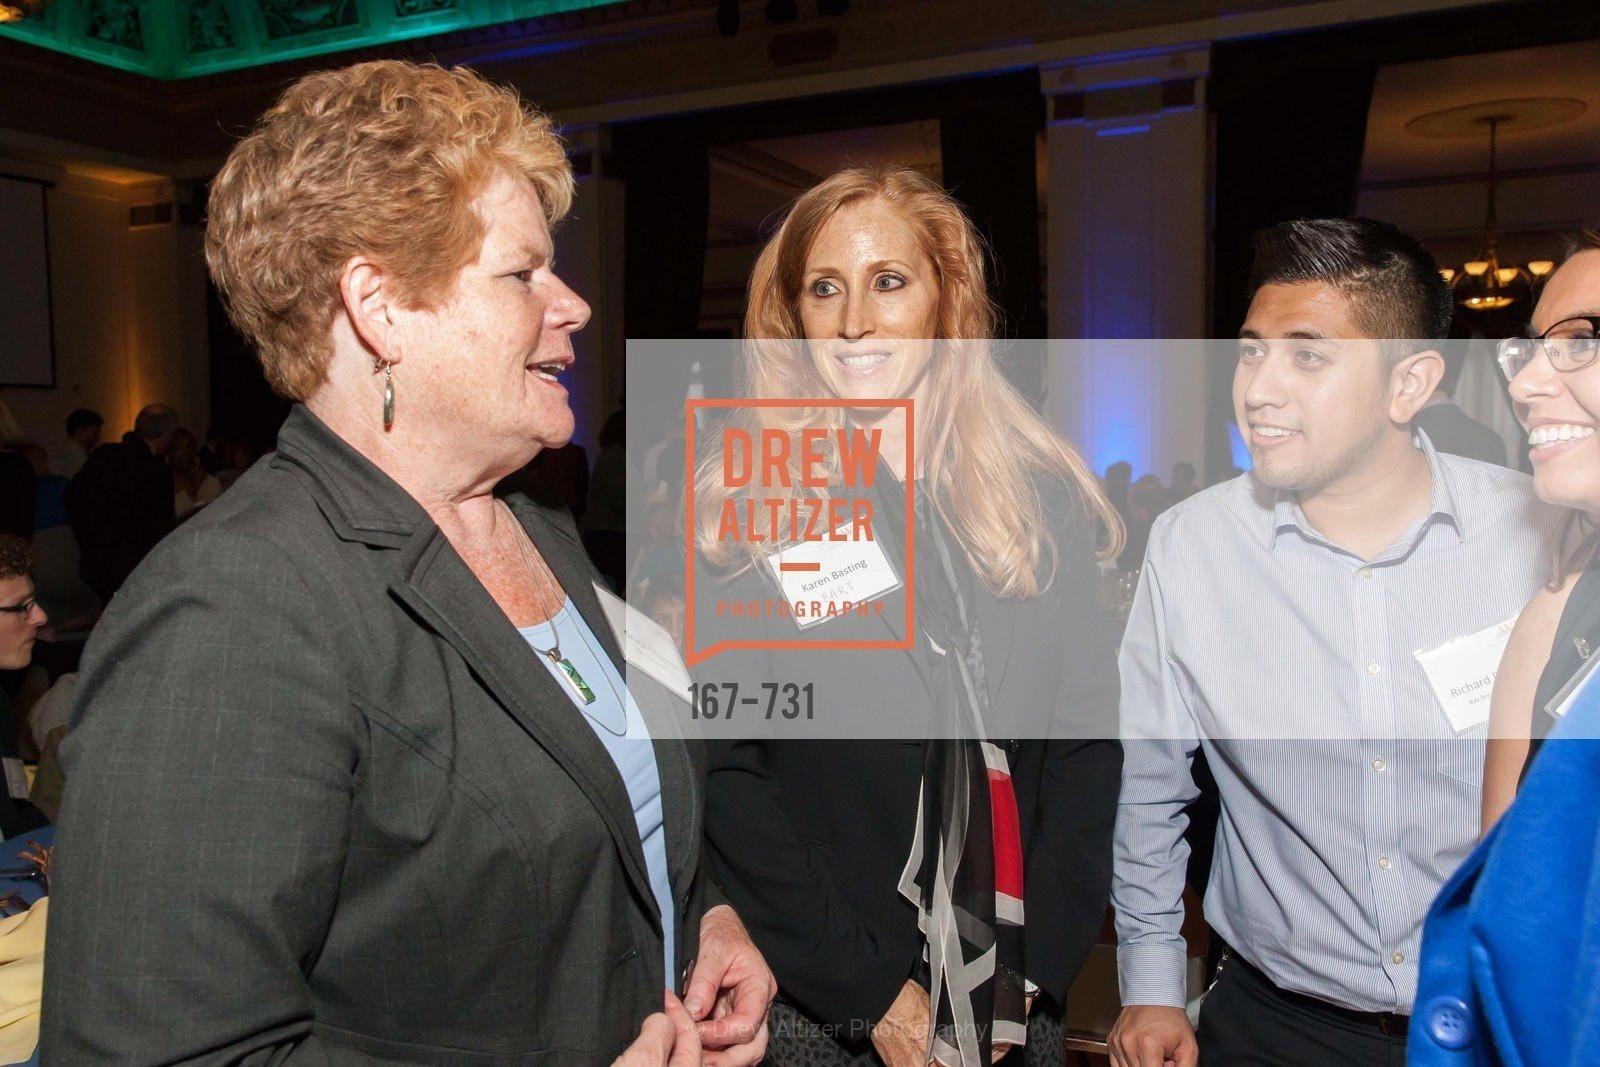 Grace Crunican, Karen Basting, Richard Fuentes, WOMEN'S TRANSPORTATION SEMINAR SF Bay Area Chapter Annual Scholarship Awards, US, May 15th, 2015,Drew Altizer, Drew Altizer Photography, full-service agency, private events, San Francisco photographer, photographer california